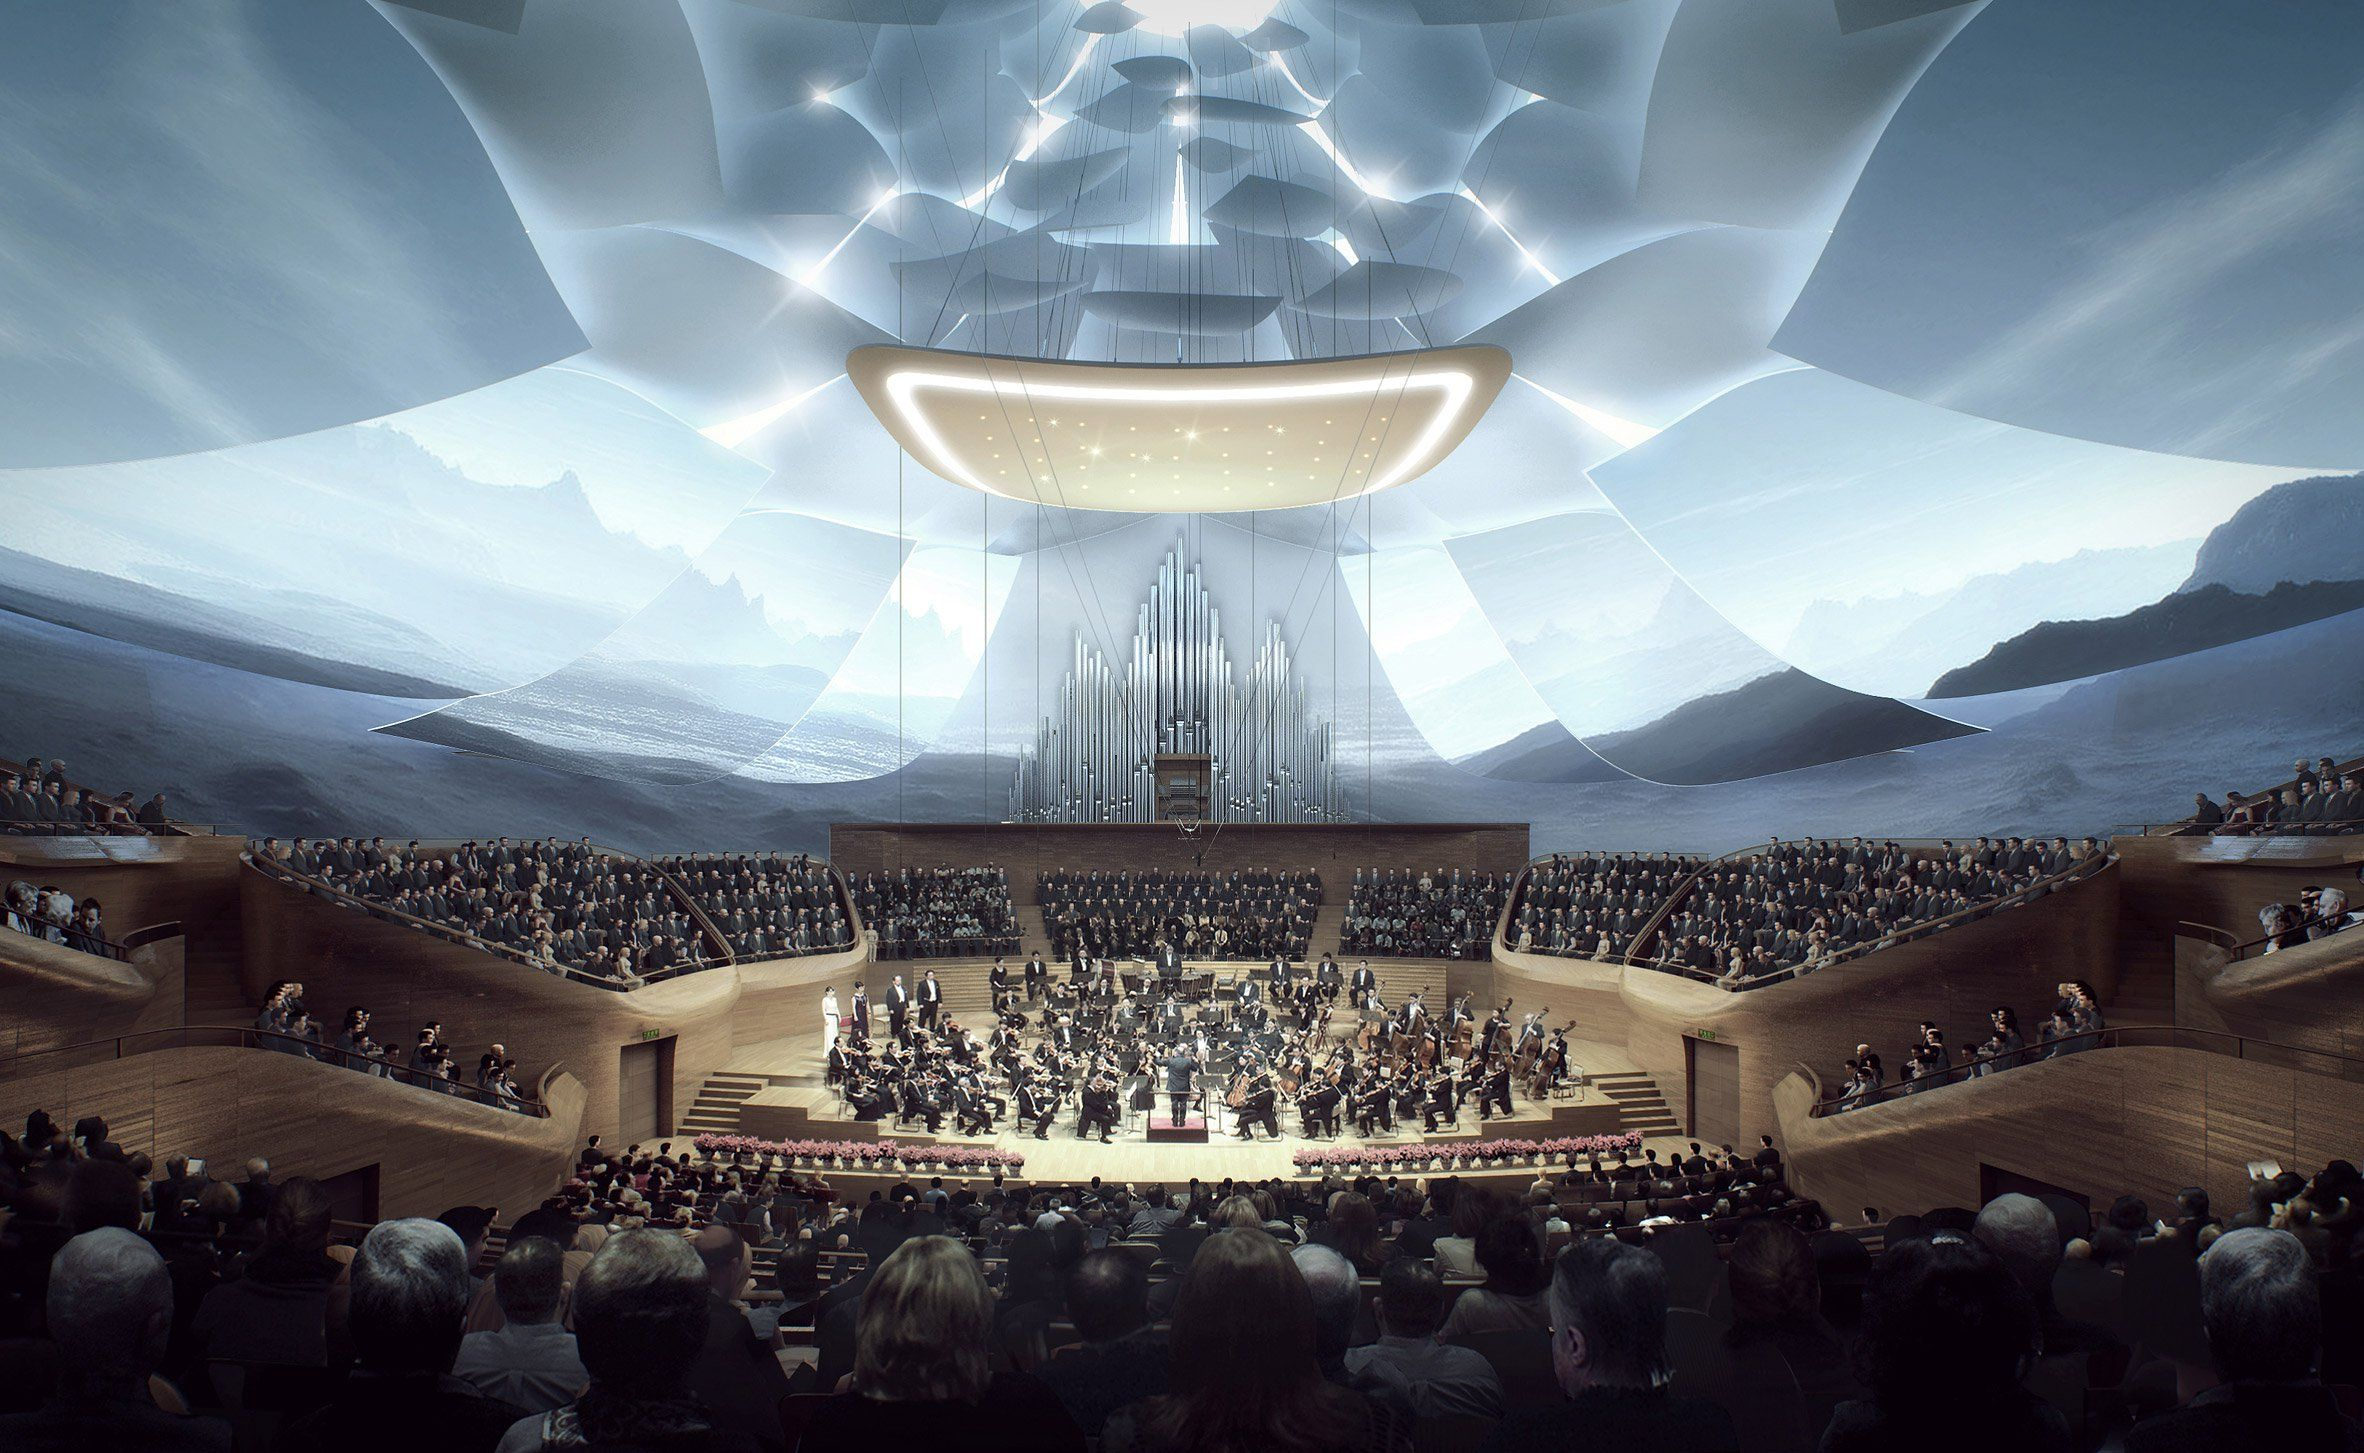 The interior of this concert hall will feature curving wooden walls and an adjustable sound reflection panel to optimise sound. This reflection panel, located behind the stage, can be raised to allow in natural light and views of the city.